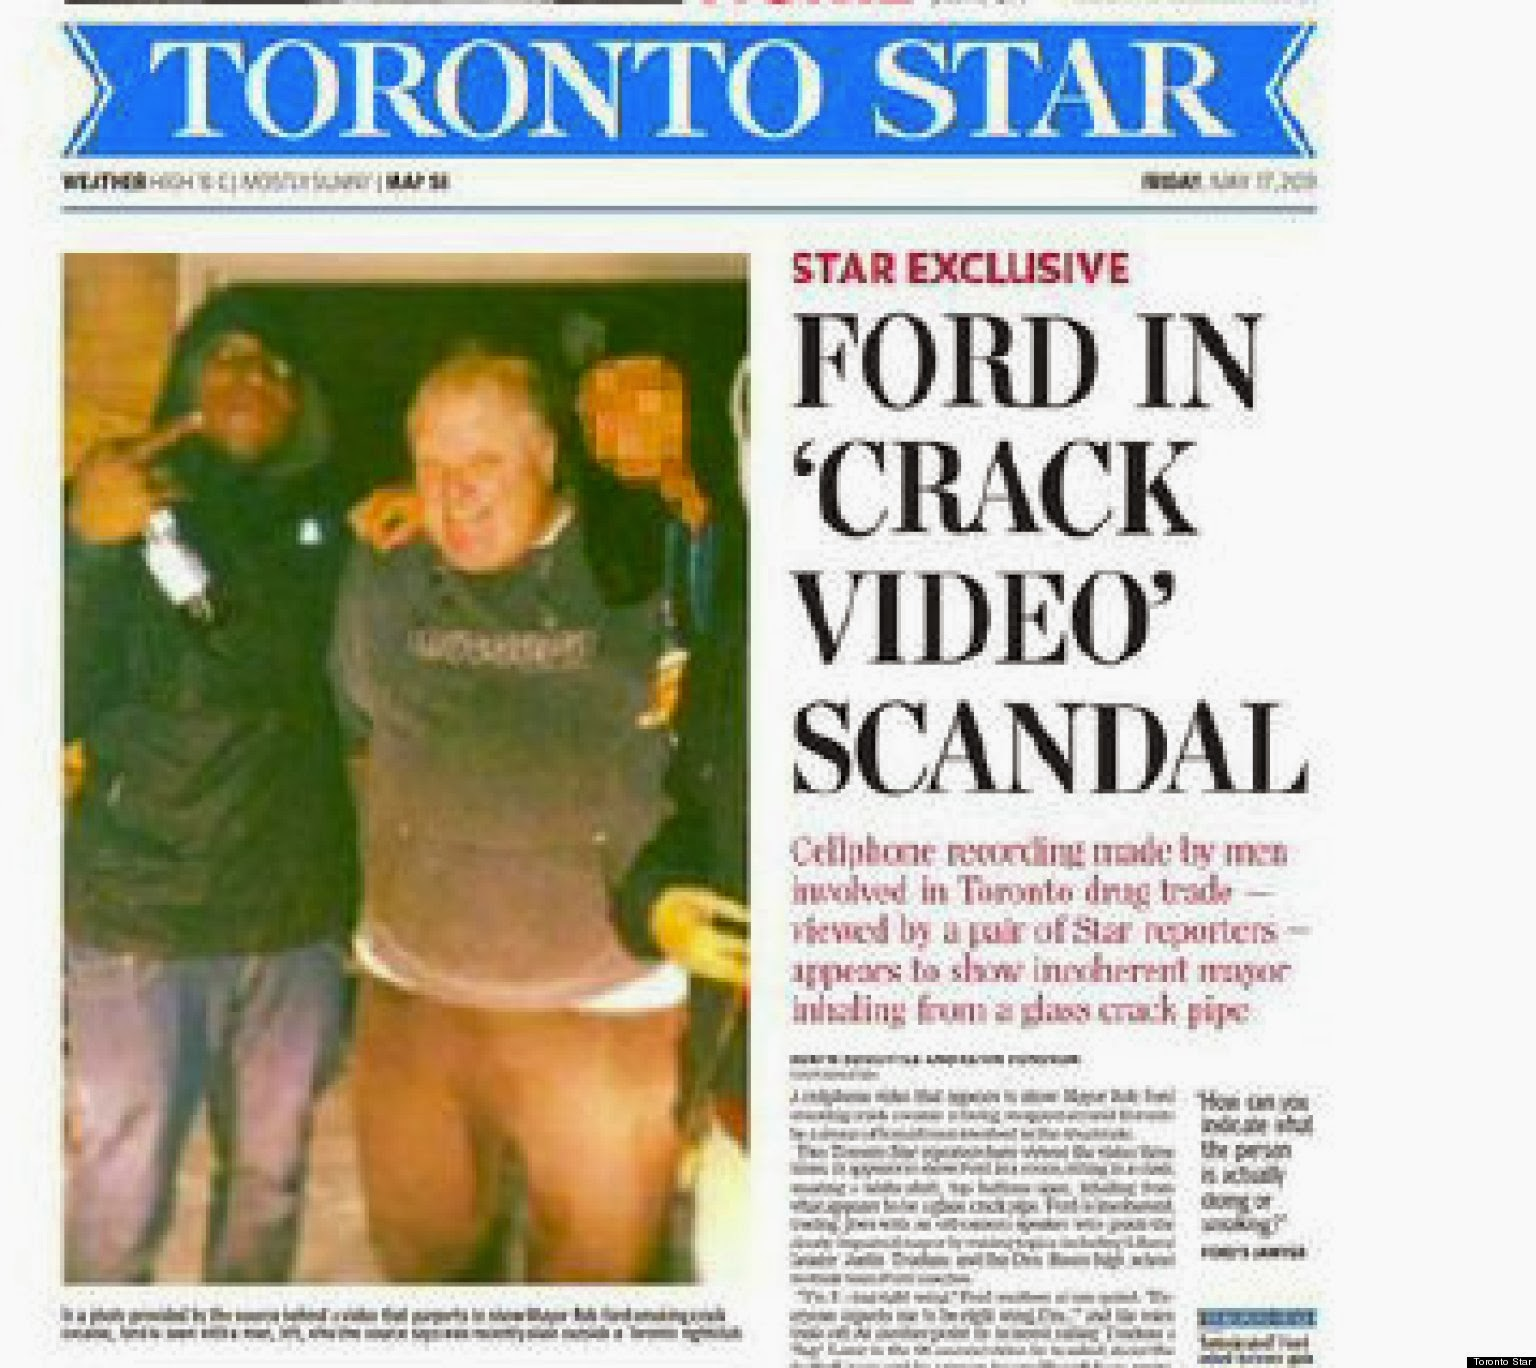 toronto star dating Connecting people through news all-you-can-read digital newsstand with thousands of the world's most popular newspapers and magazines vast selection of top stories in full-content format.